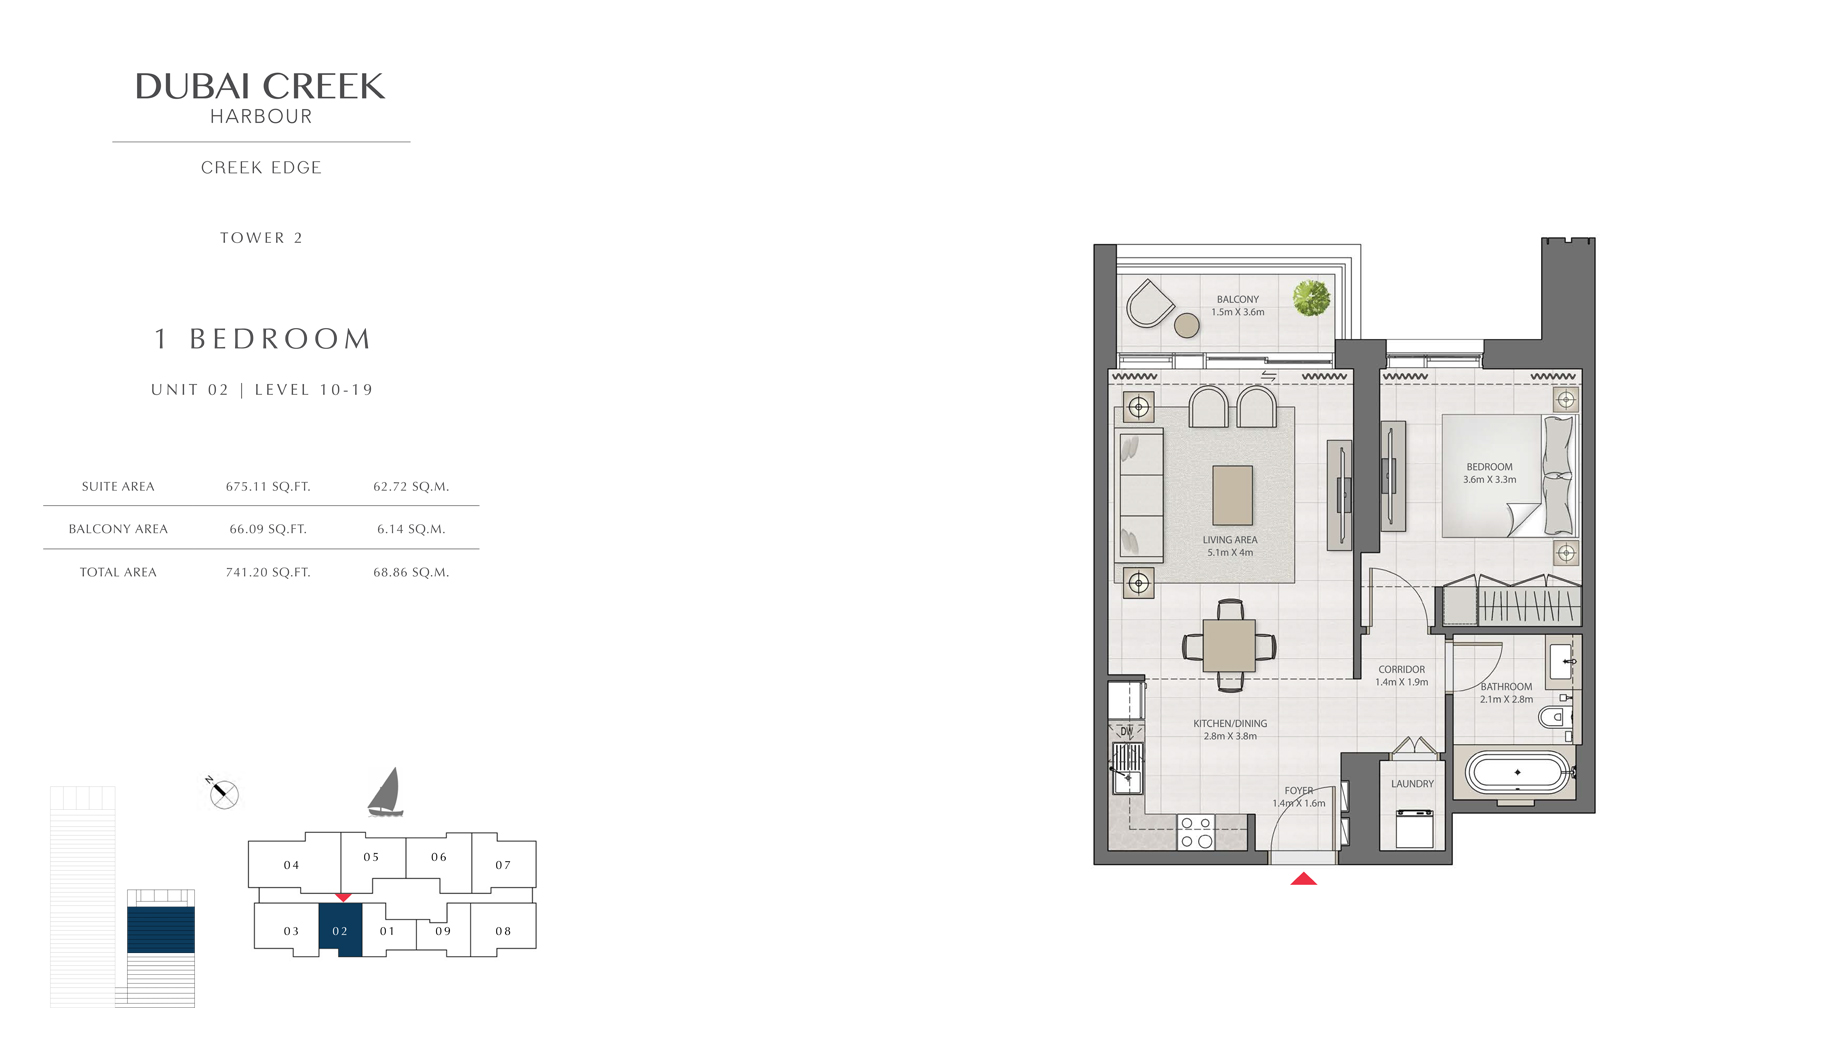 1 Bedroom Tower 2 Unit 02 Level 10-19 Size 741 sq.ft